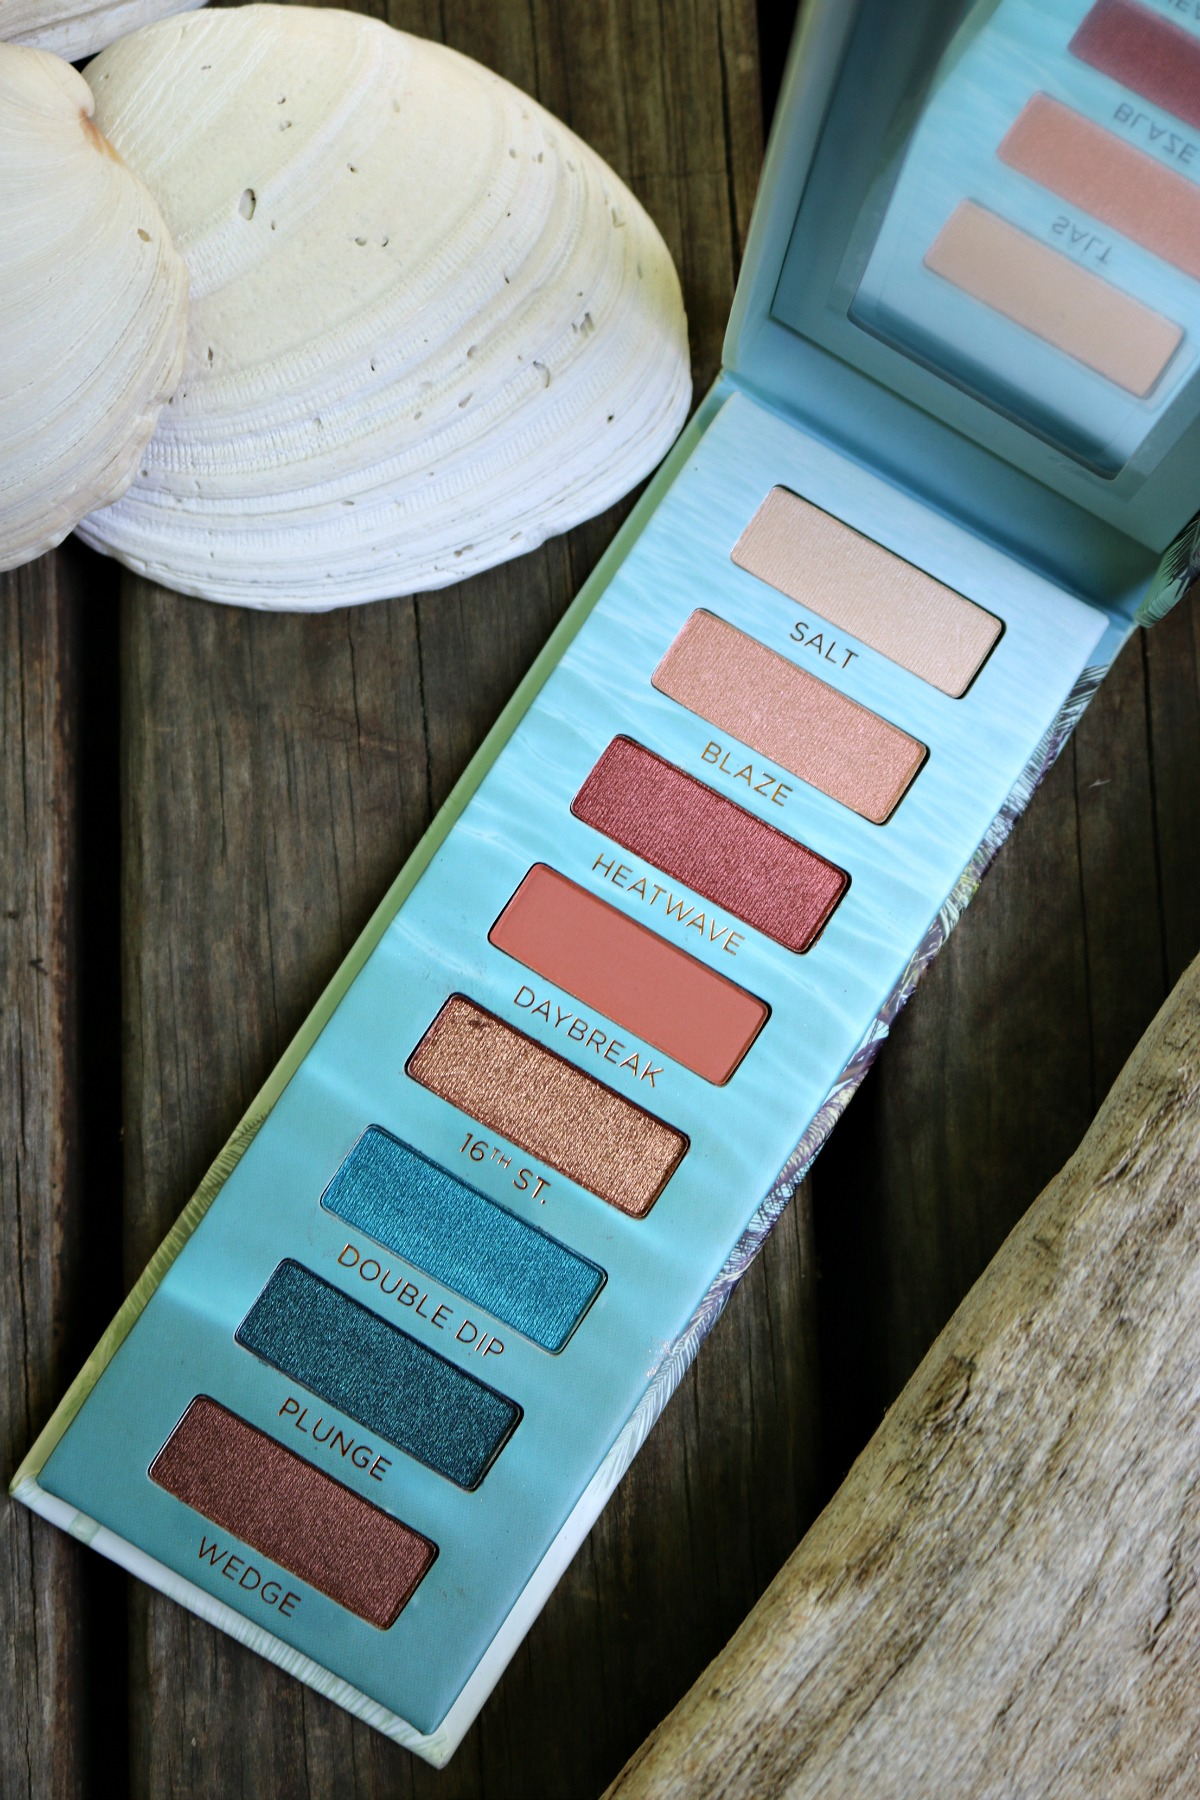 The Perfect Summer Eyeshadow Palette?